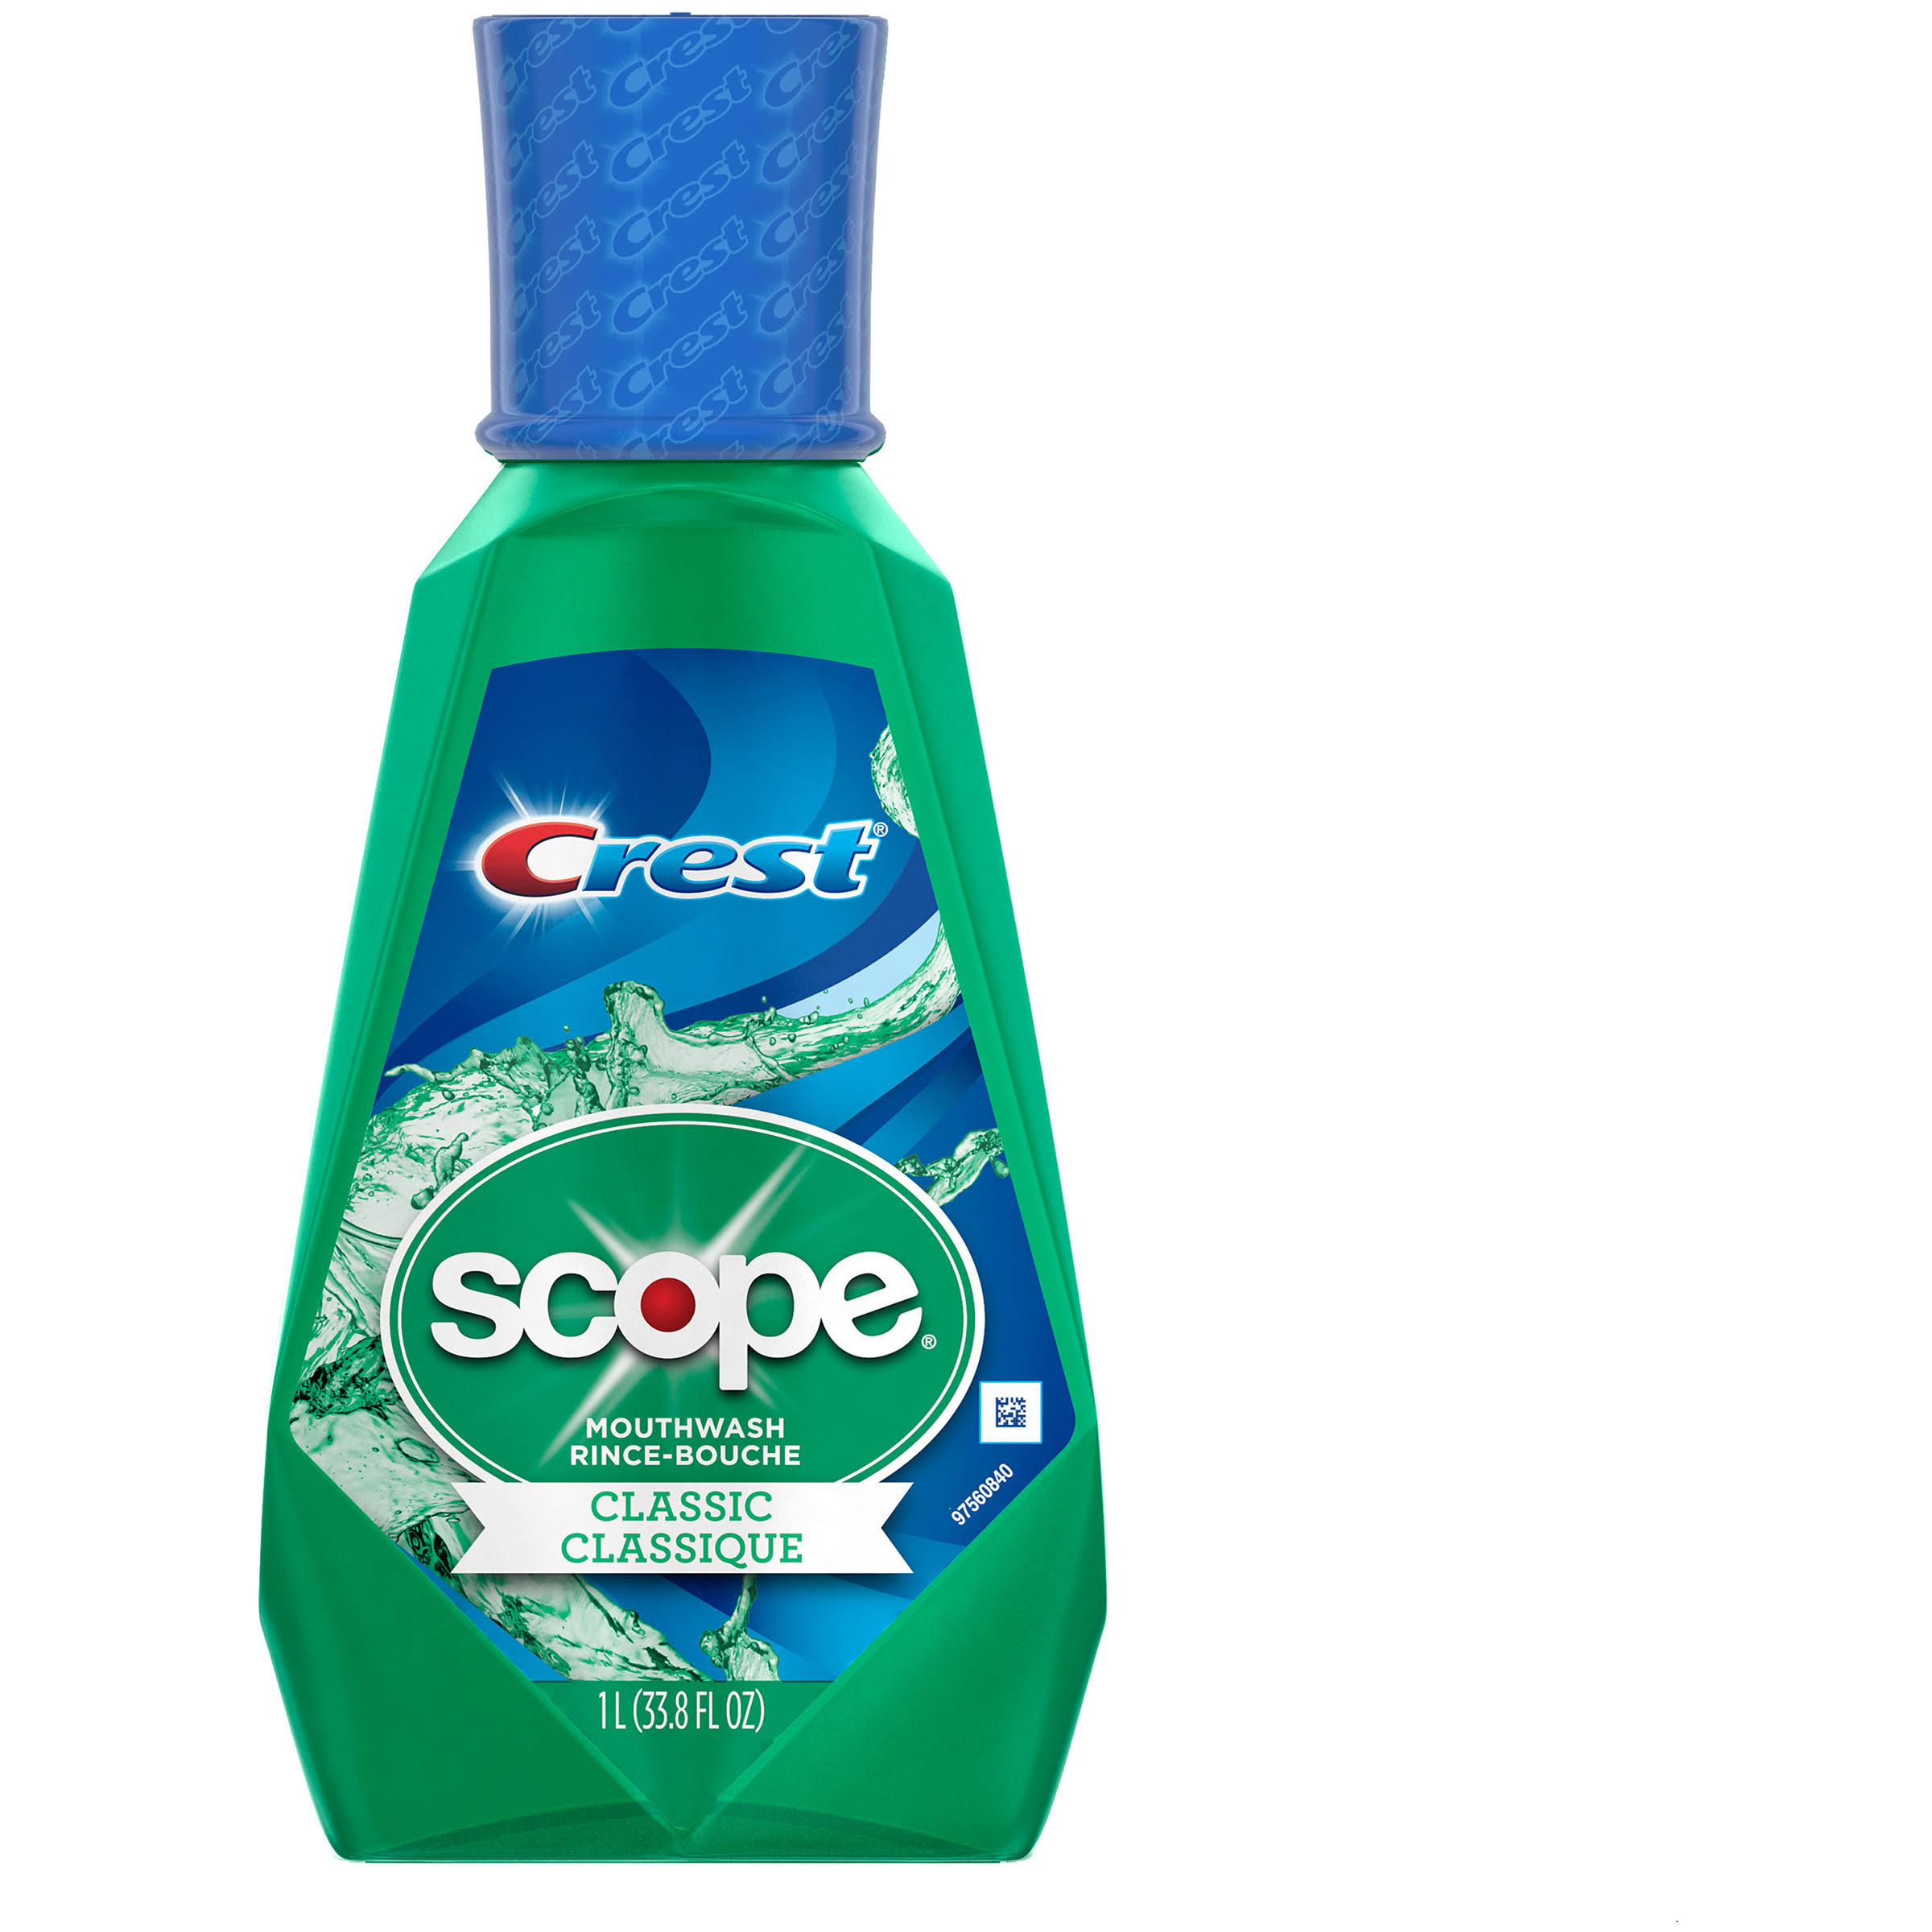 Crest Scope Classic Original Mint Mouthwash - 33.8oz